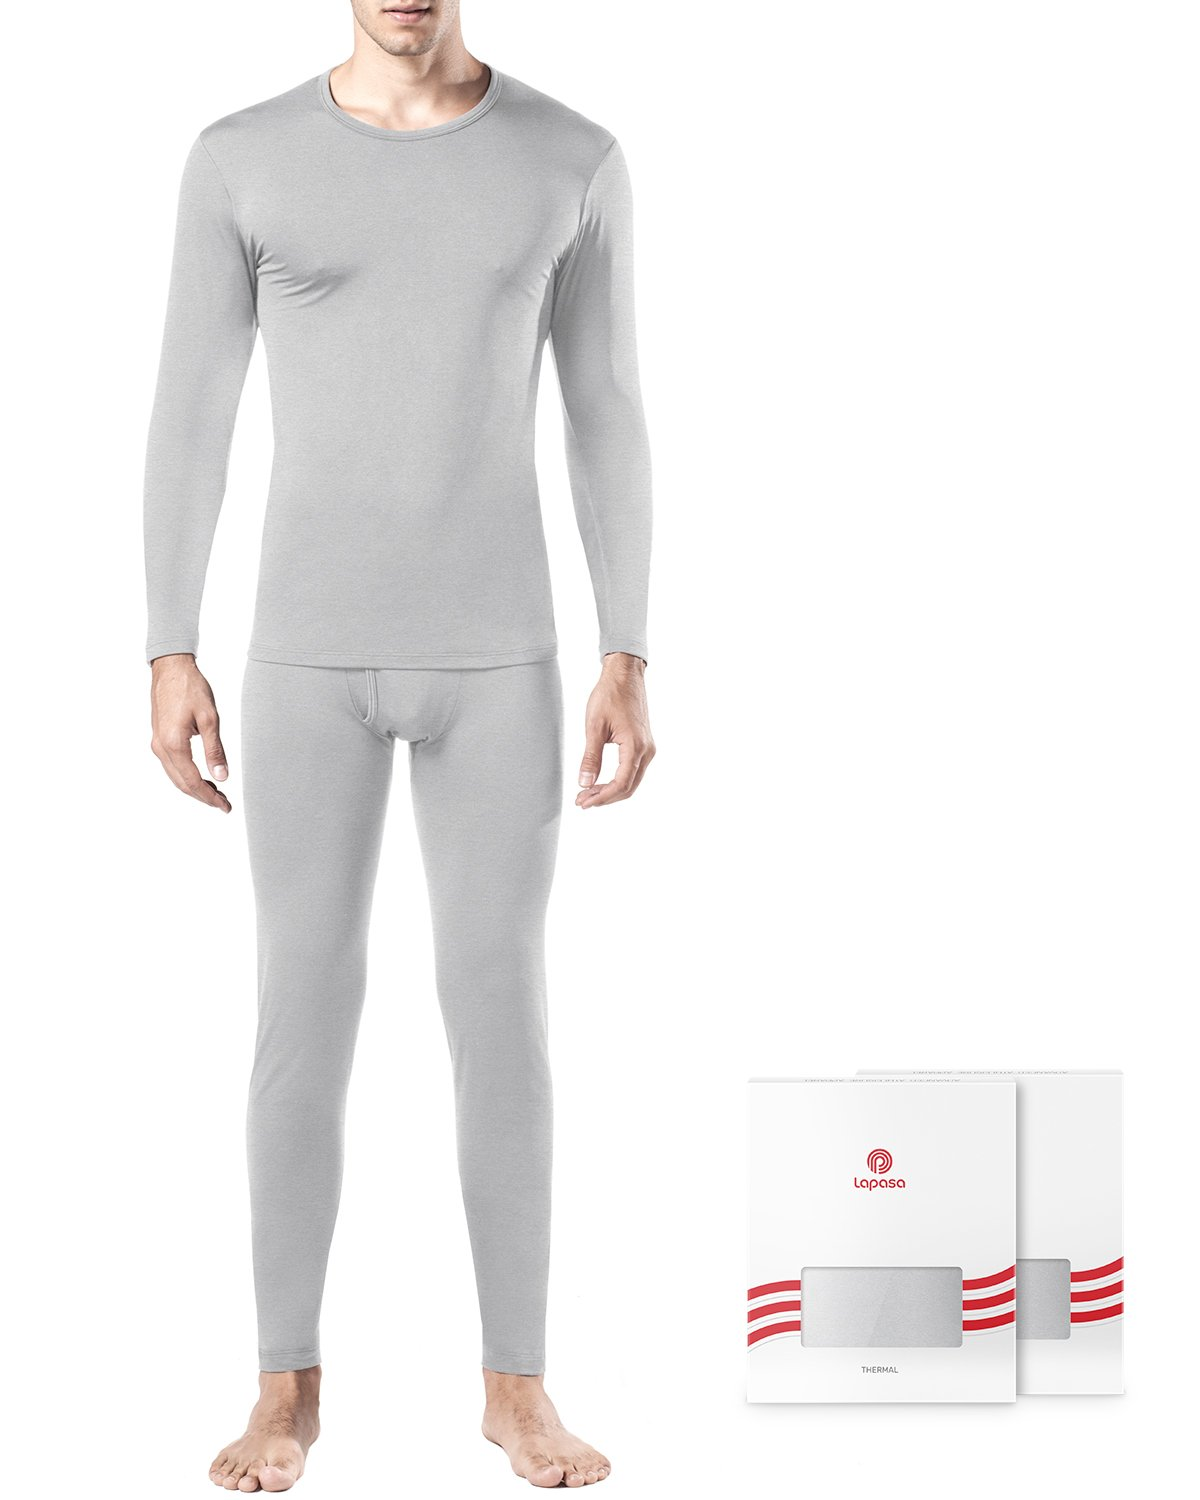 2b32bd36d5b LAPASA Men s Thermal Underwear Long John Set Fleece Lined Base Layer Top  and Bottom M11   Thermal Underwear   Clothing